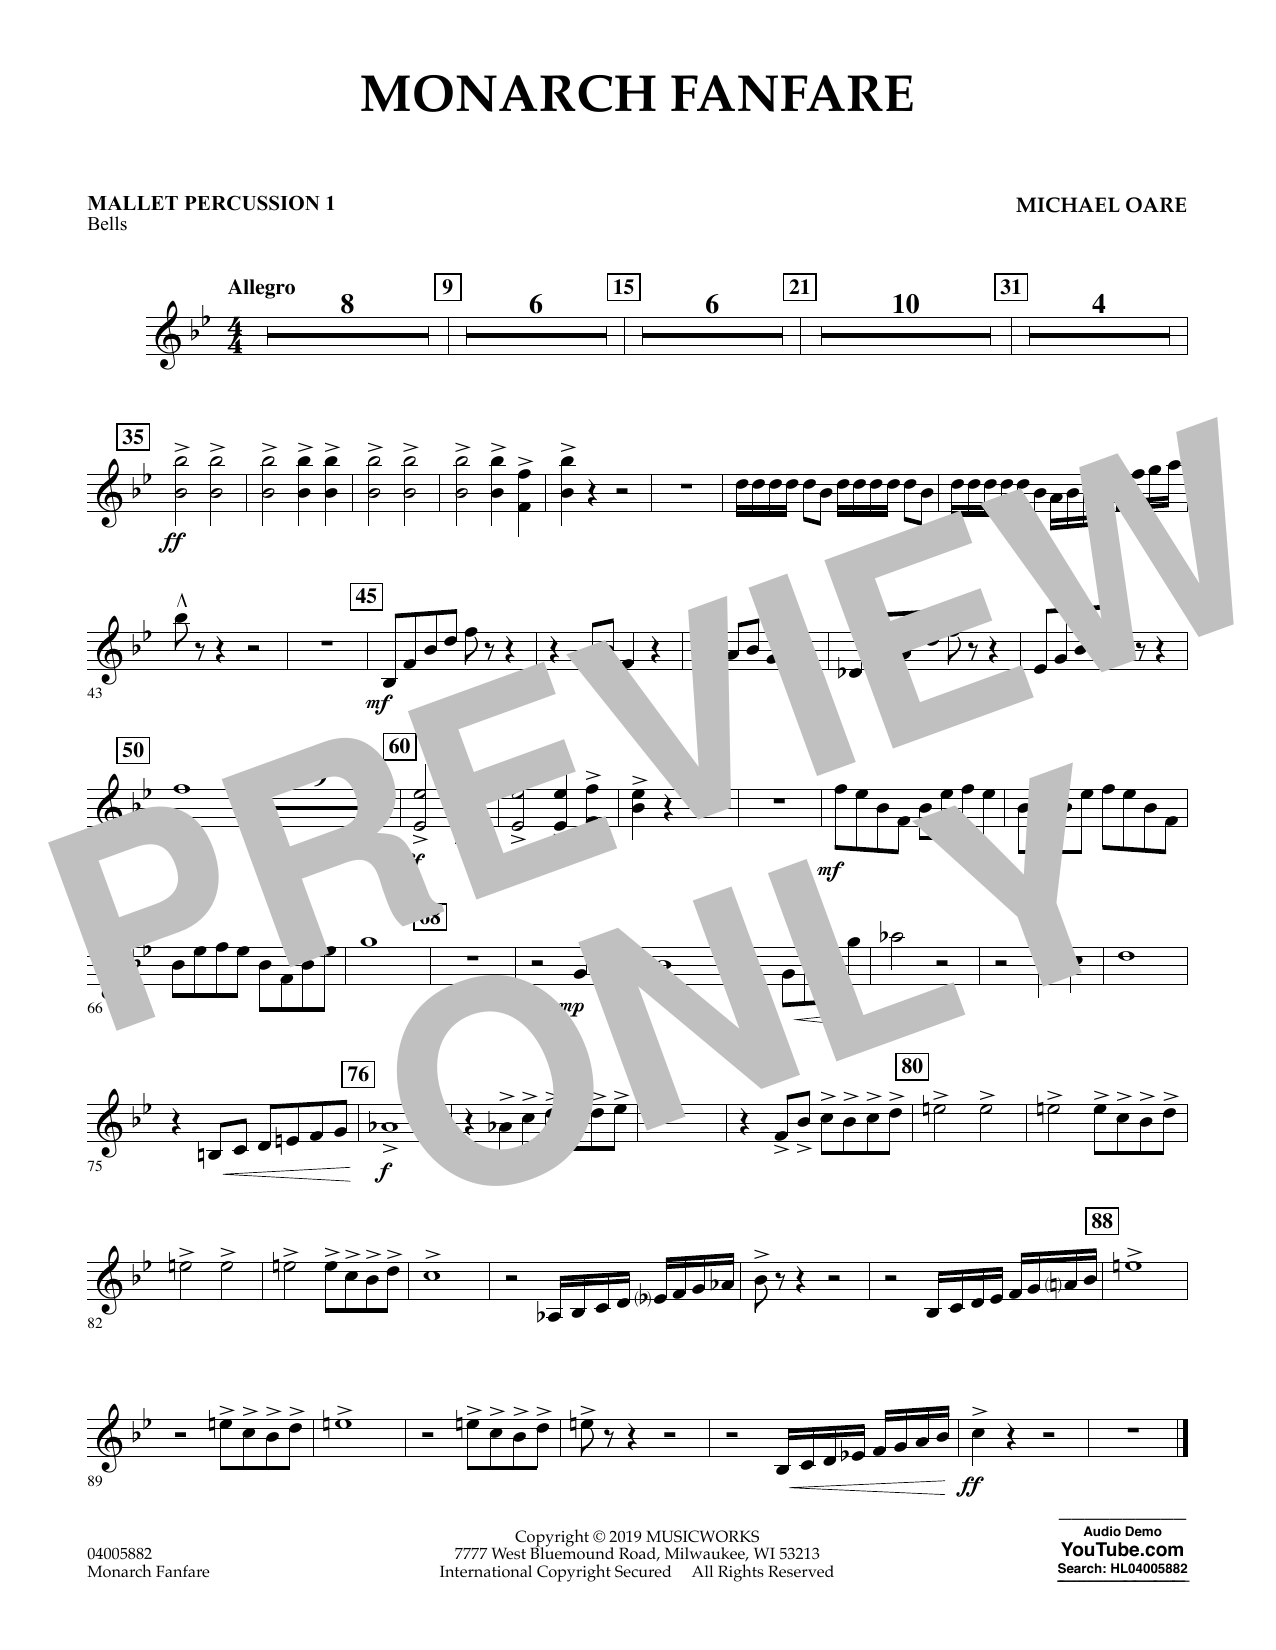 Michael Oare Monarch Fanfare - Mallet Percussion 1 sheet music preview music notes and score for Concert Band including 1 page(s)